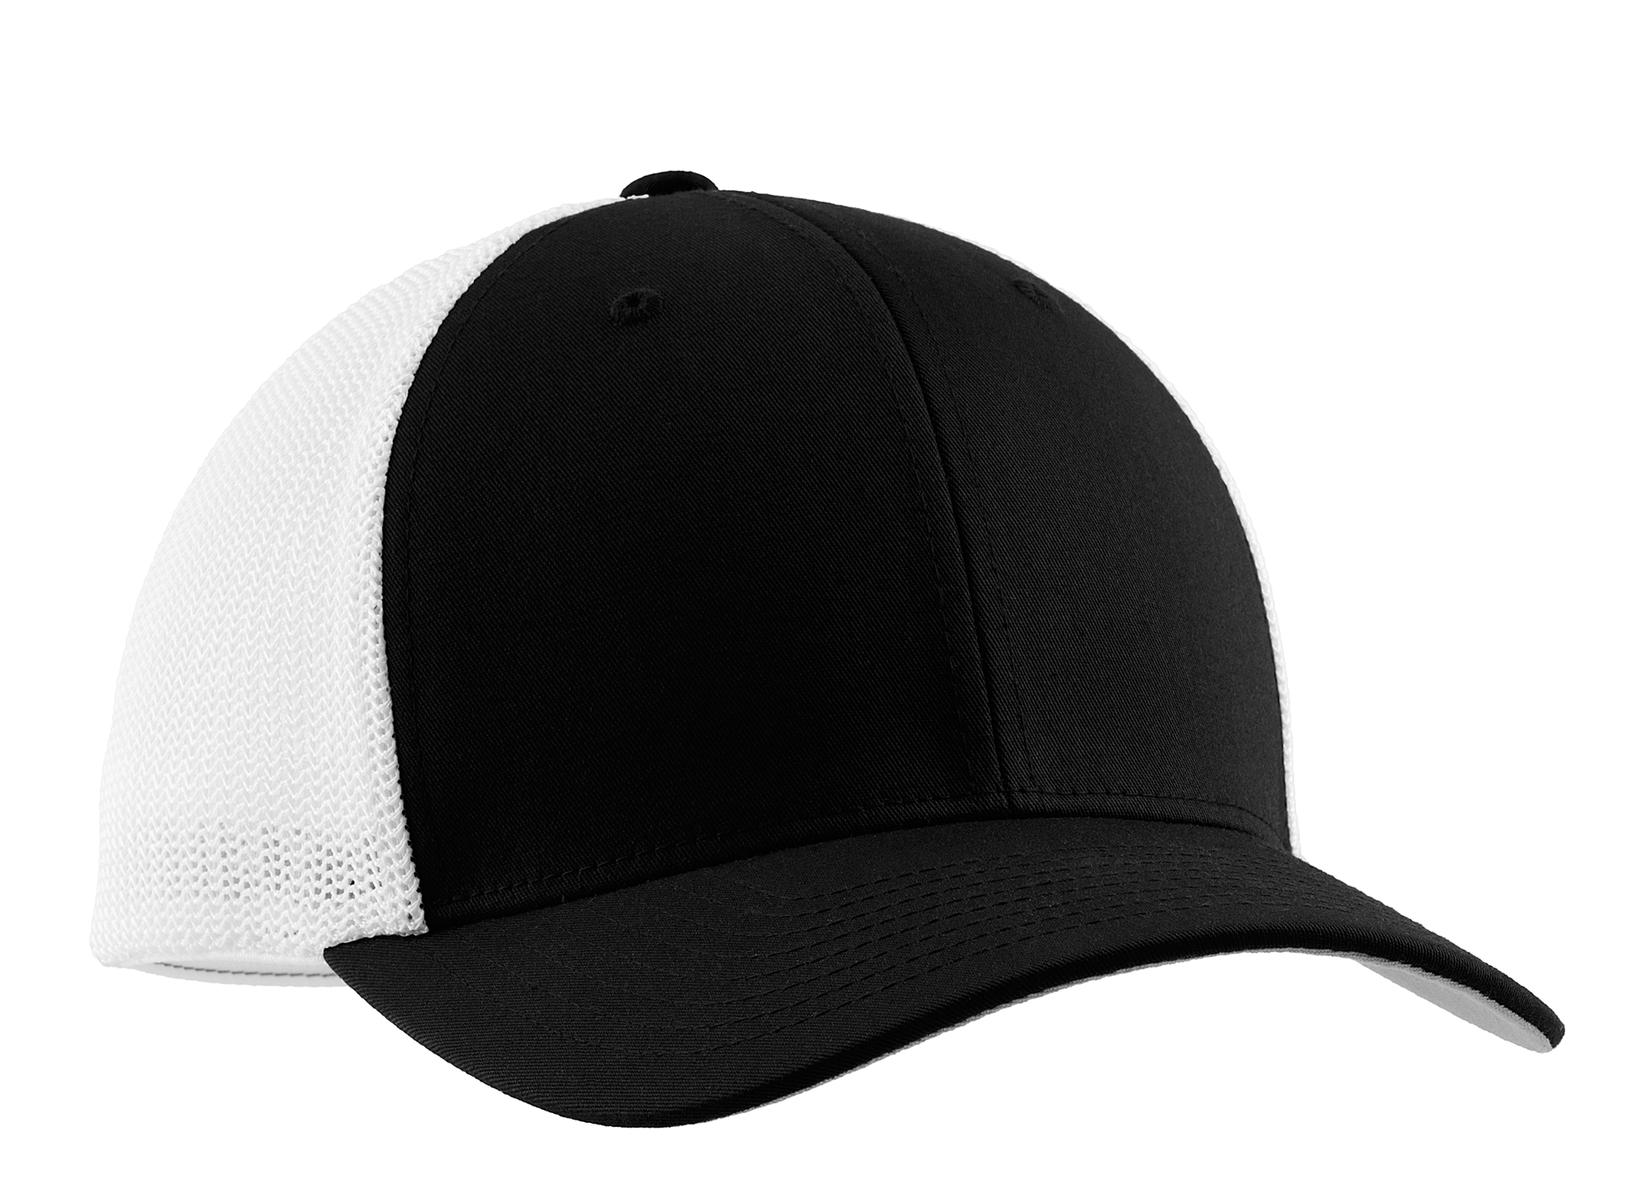 739585a7726 Port Authority Flexfit Mesh Back Cap. C812. Port Authority Black White   Port ...